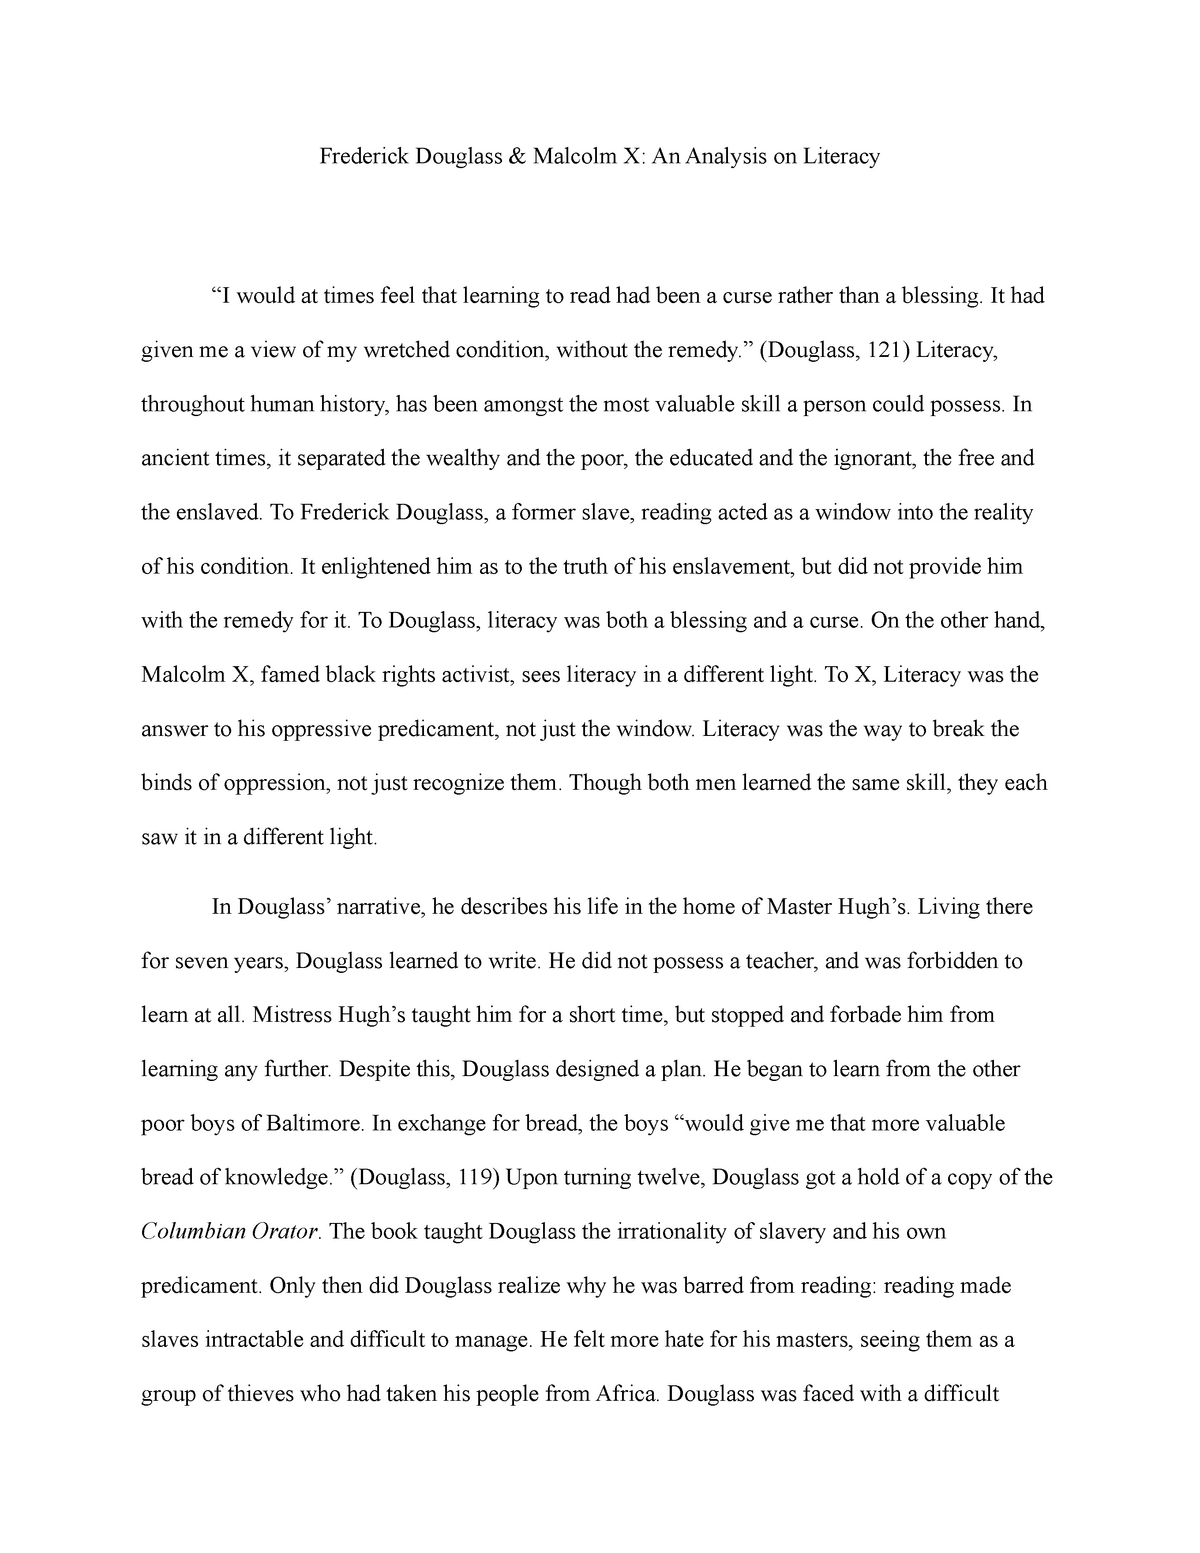 essay on frederick douglass learning to read and write